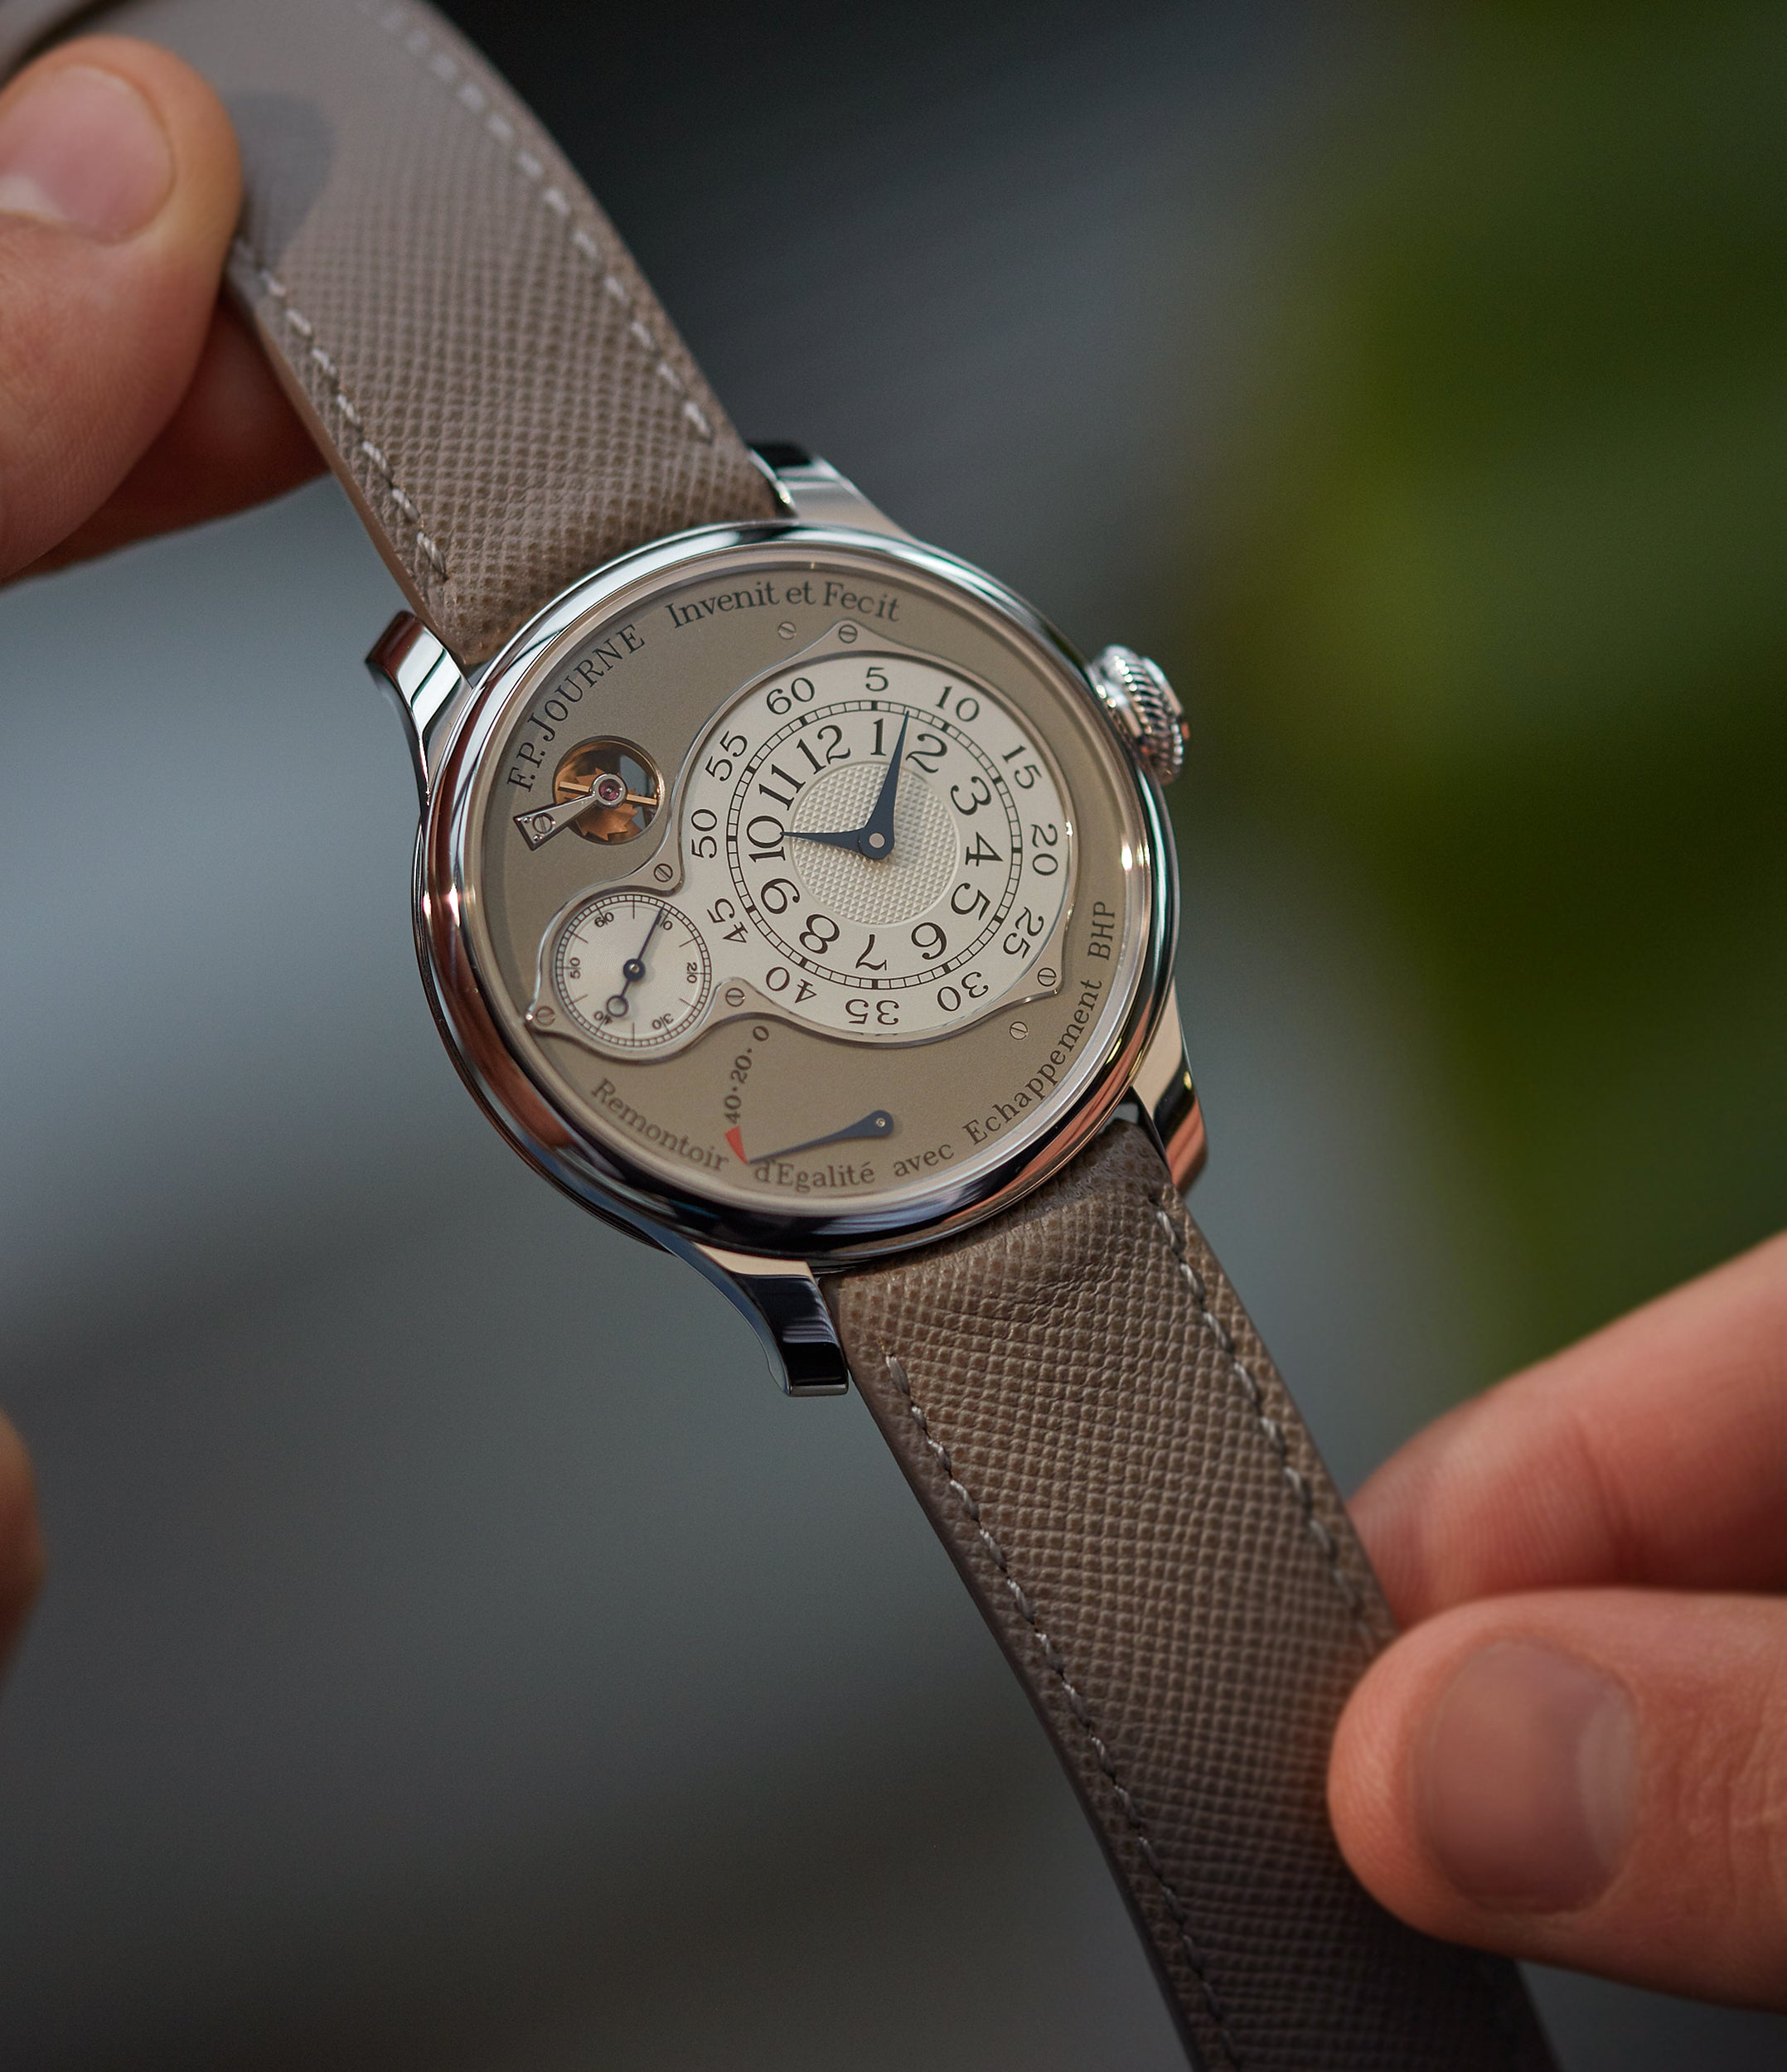 collect F. P. Journe Chronometre Optimum 40mm platinum pre-owned dress watch for sale at A Collected Man London